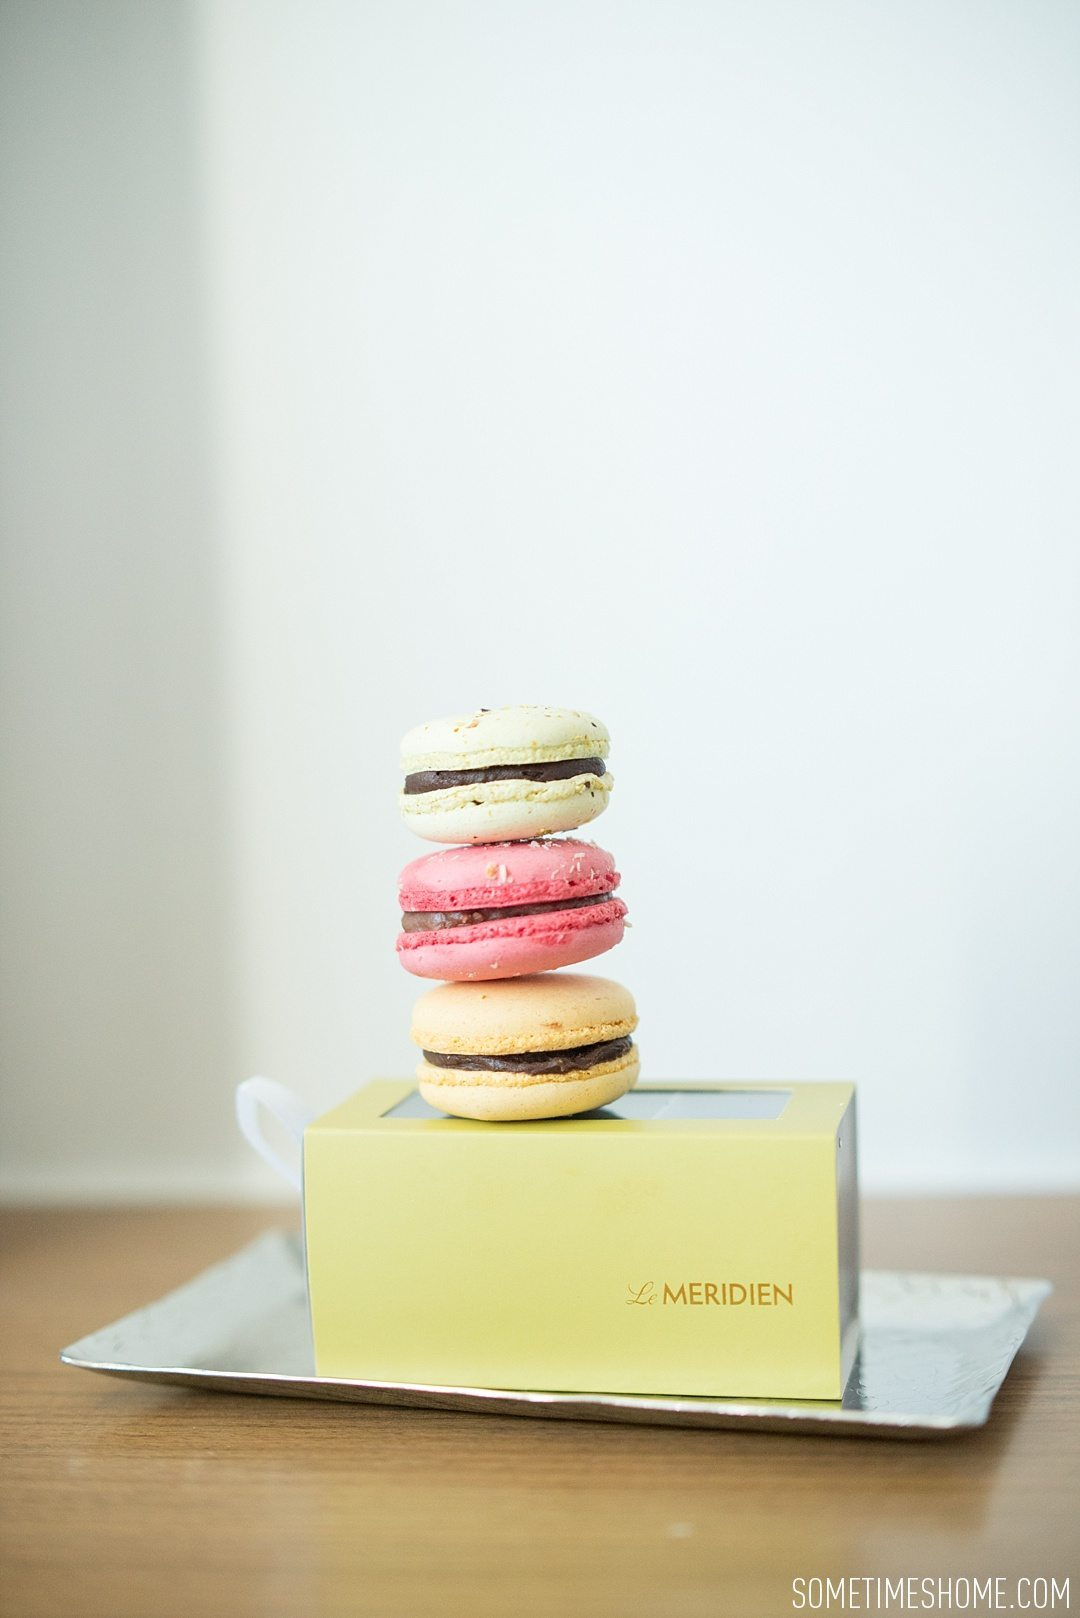 Affordable VIP Treatment at Le Meridien Chiang Mai, Thailand. Photos of macarons for Concierge Level by Sometimes Home.